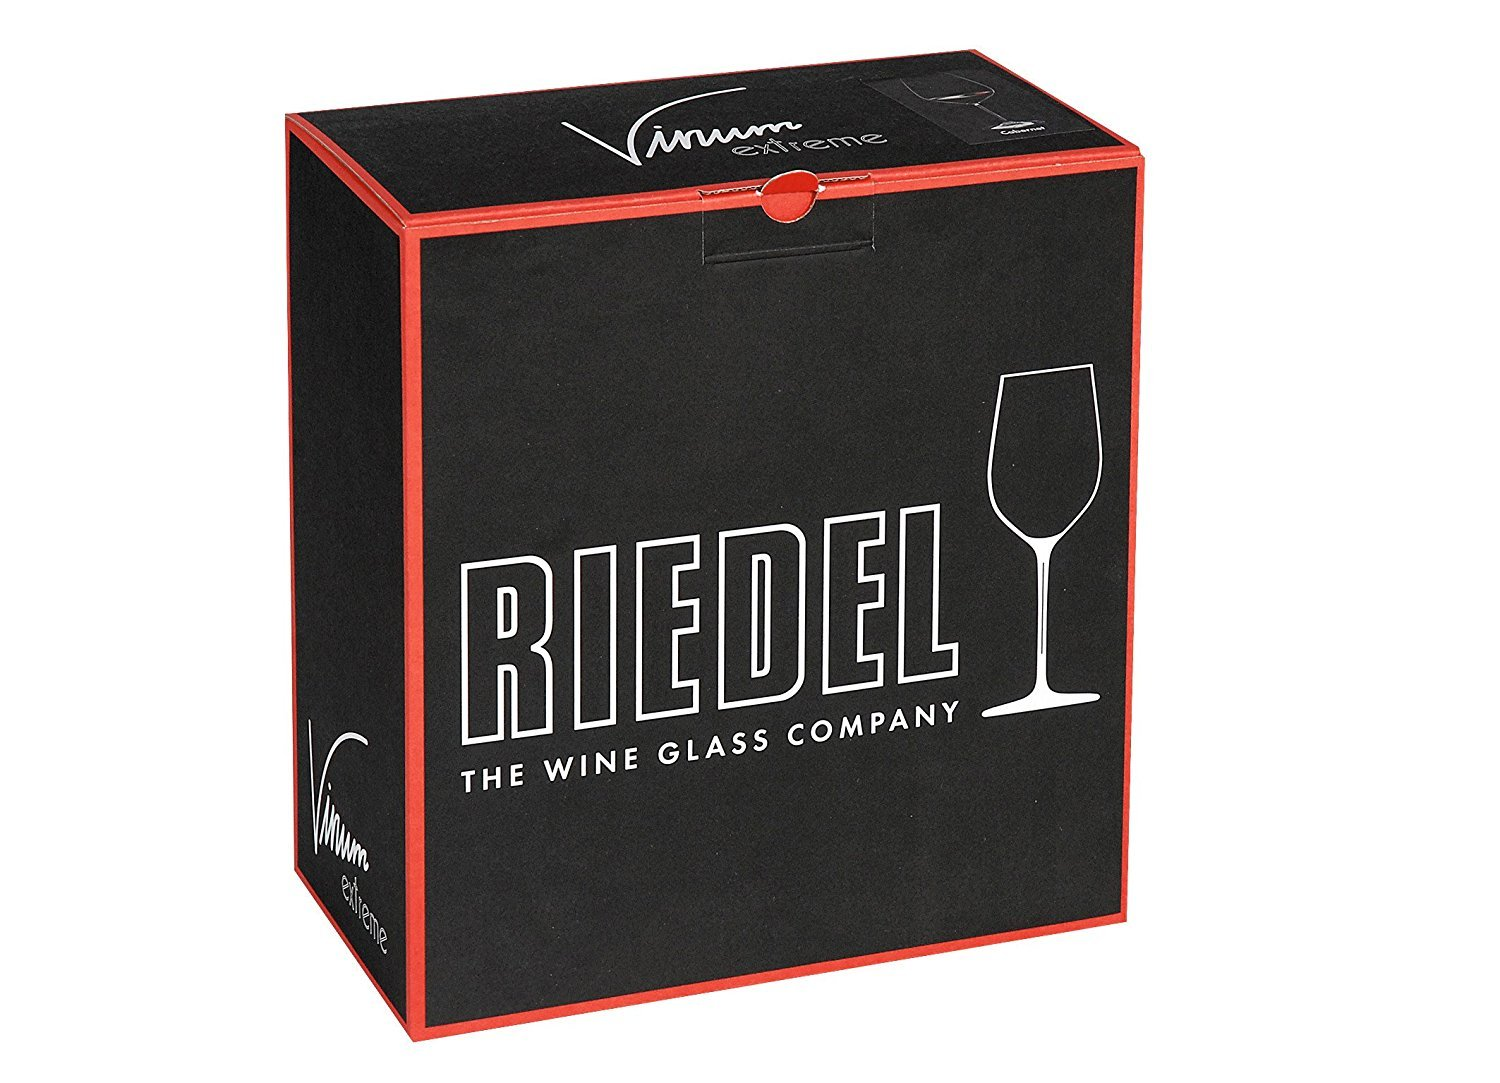 Riedel Vinum Extreme Riesling/Sauvignon Blanc Wine Glass, Set of 2 by Riedel (Image #6)